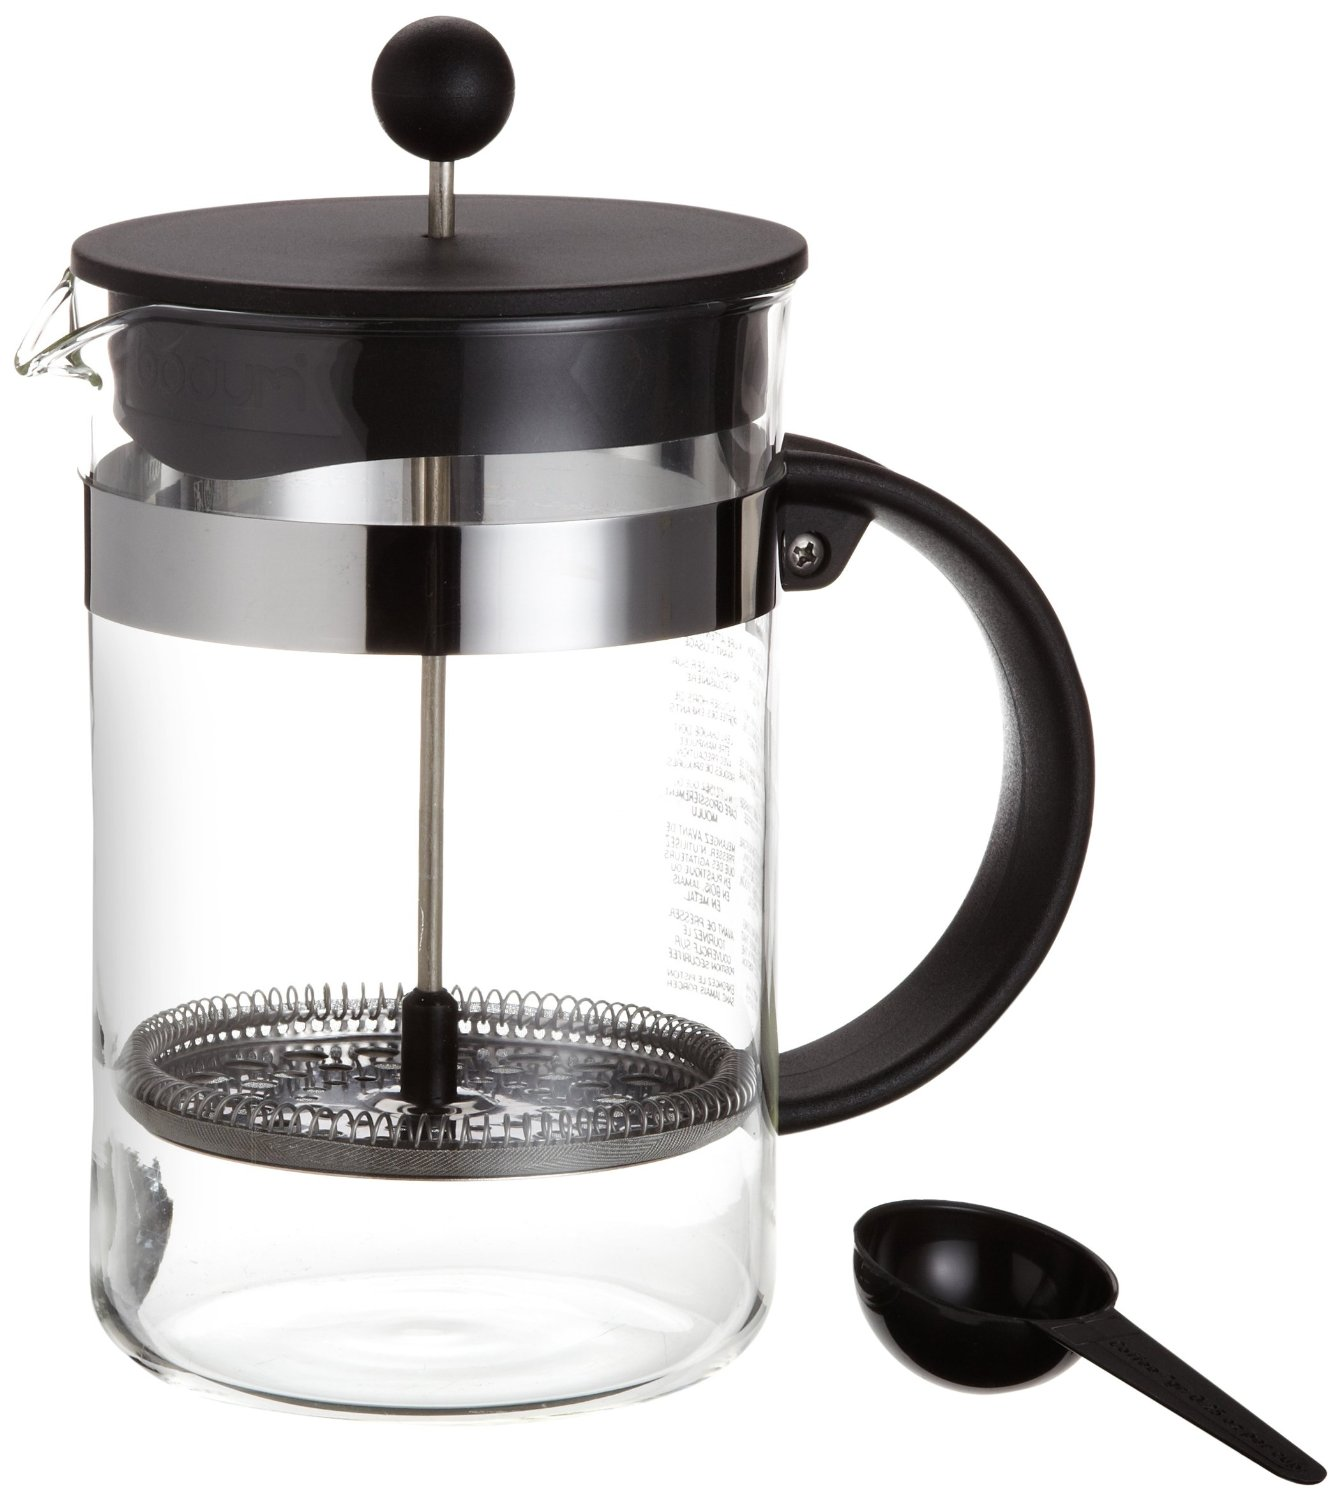 Bodum French Press Instructions Manual Cafe West Side Pane From Heaven